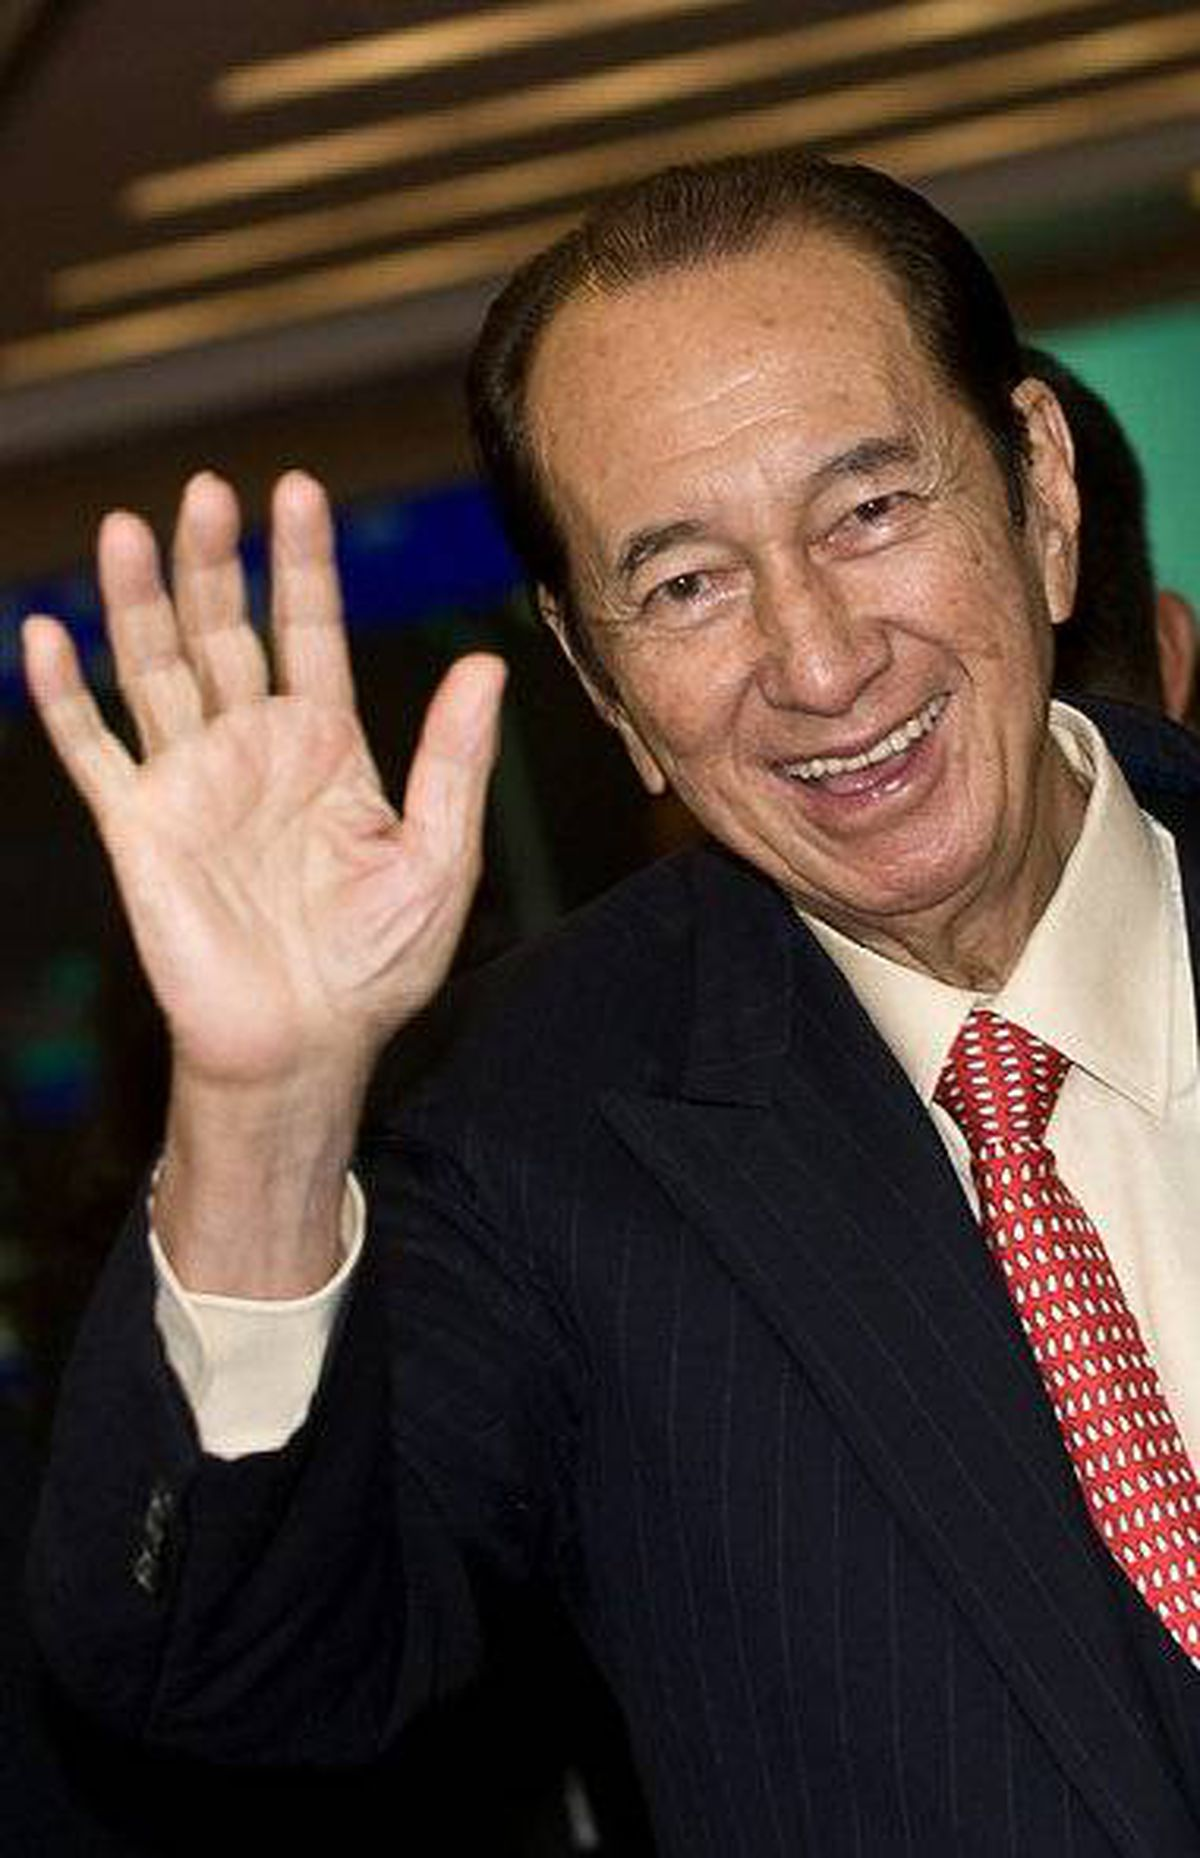 "file photo taken on July 16, 2008 shows Macau tycoon Stanley Ho waving during the listing ceremony of his part-owned company SJM Holdings Limited in Hong Kong. Macau tycoon Stanley Ho said on television on January 26, 2011 that a brawl with relatives whom he accused of stealing his $3.1-billion (U.S.) empre was ""resolved""."